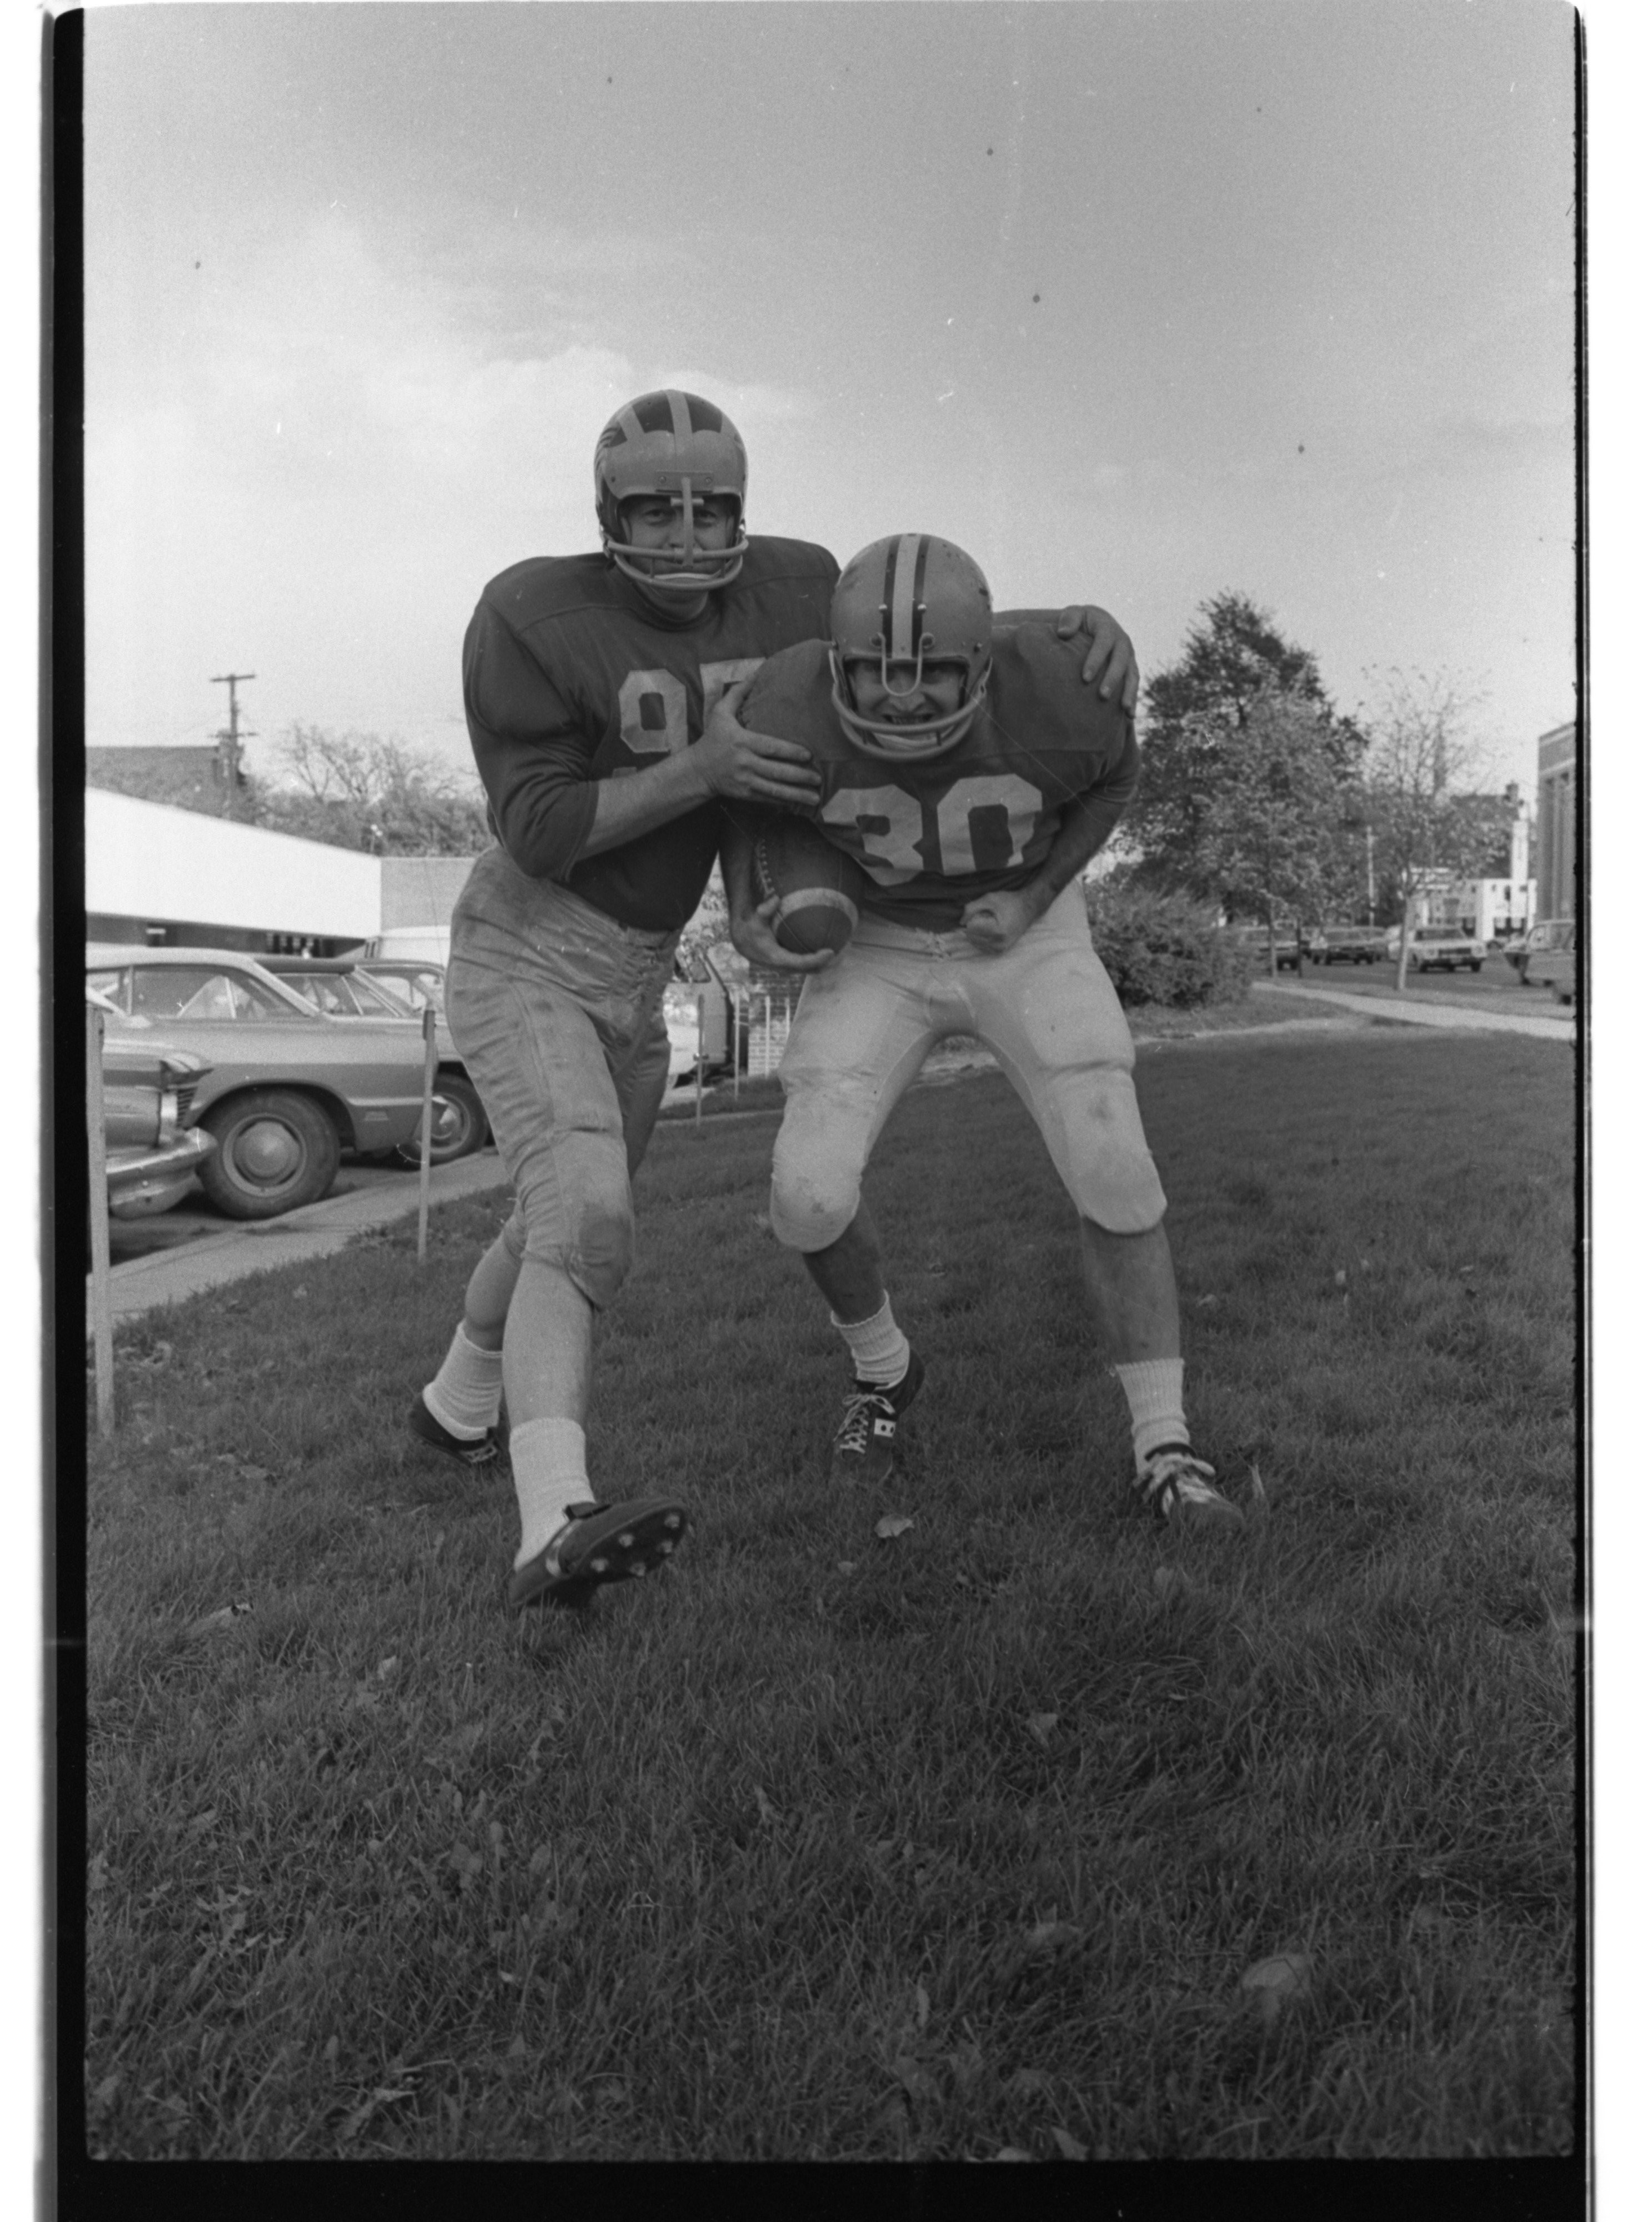 Washtenaw County Sheriff's  and Ann Arbor Police Players Practice for Annual Pig Bowl Game, November 1971 image